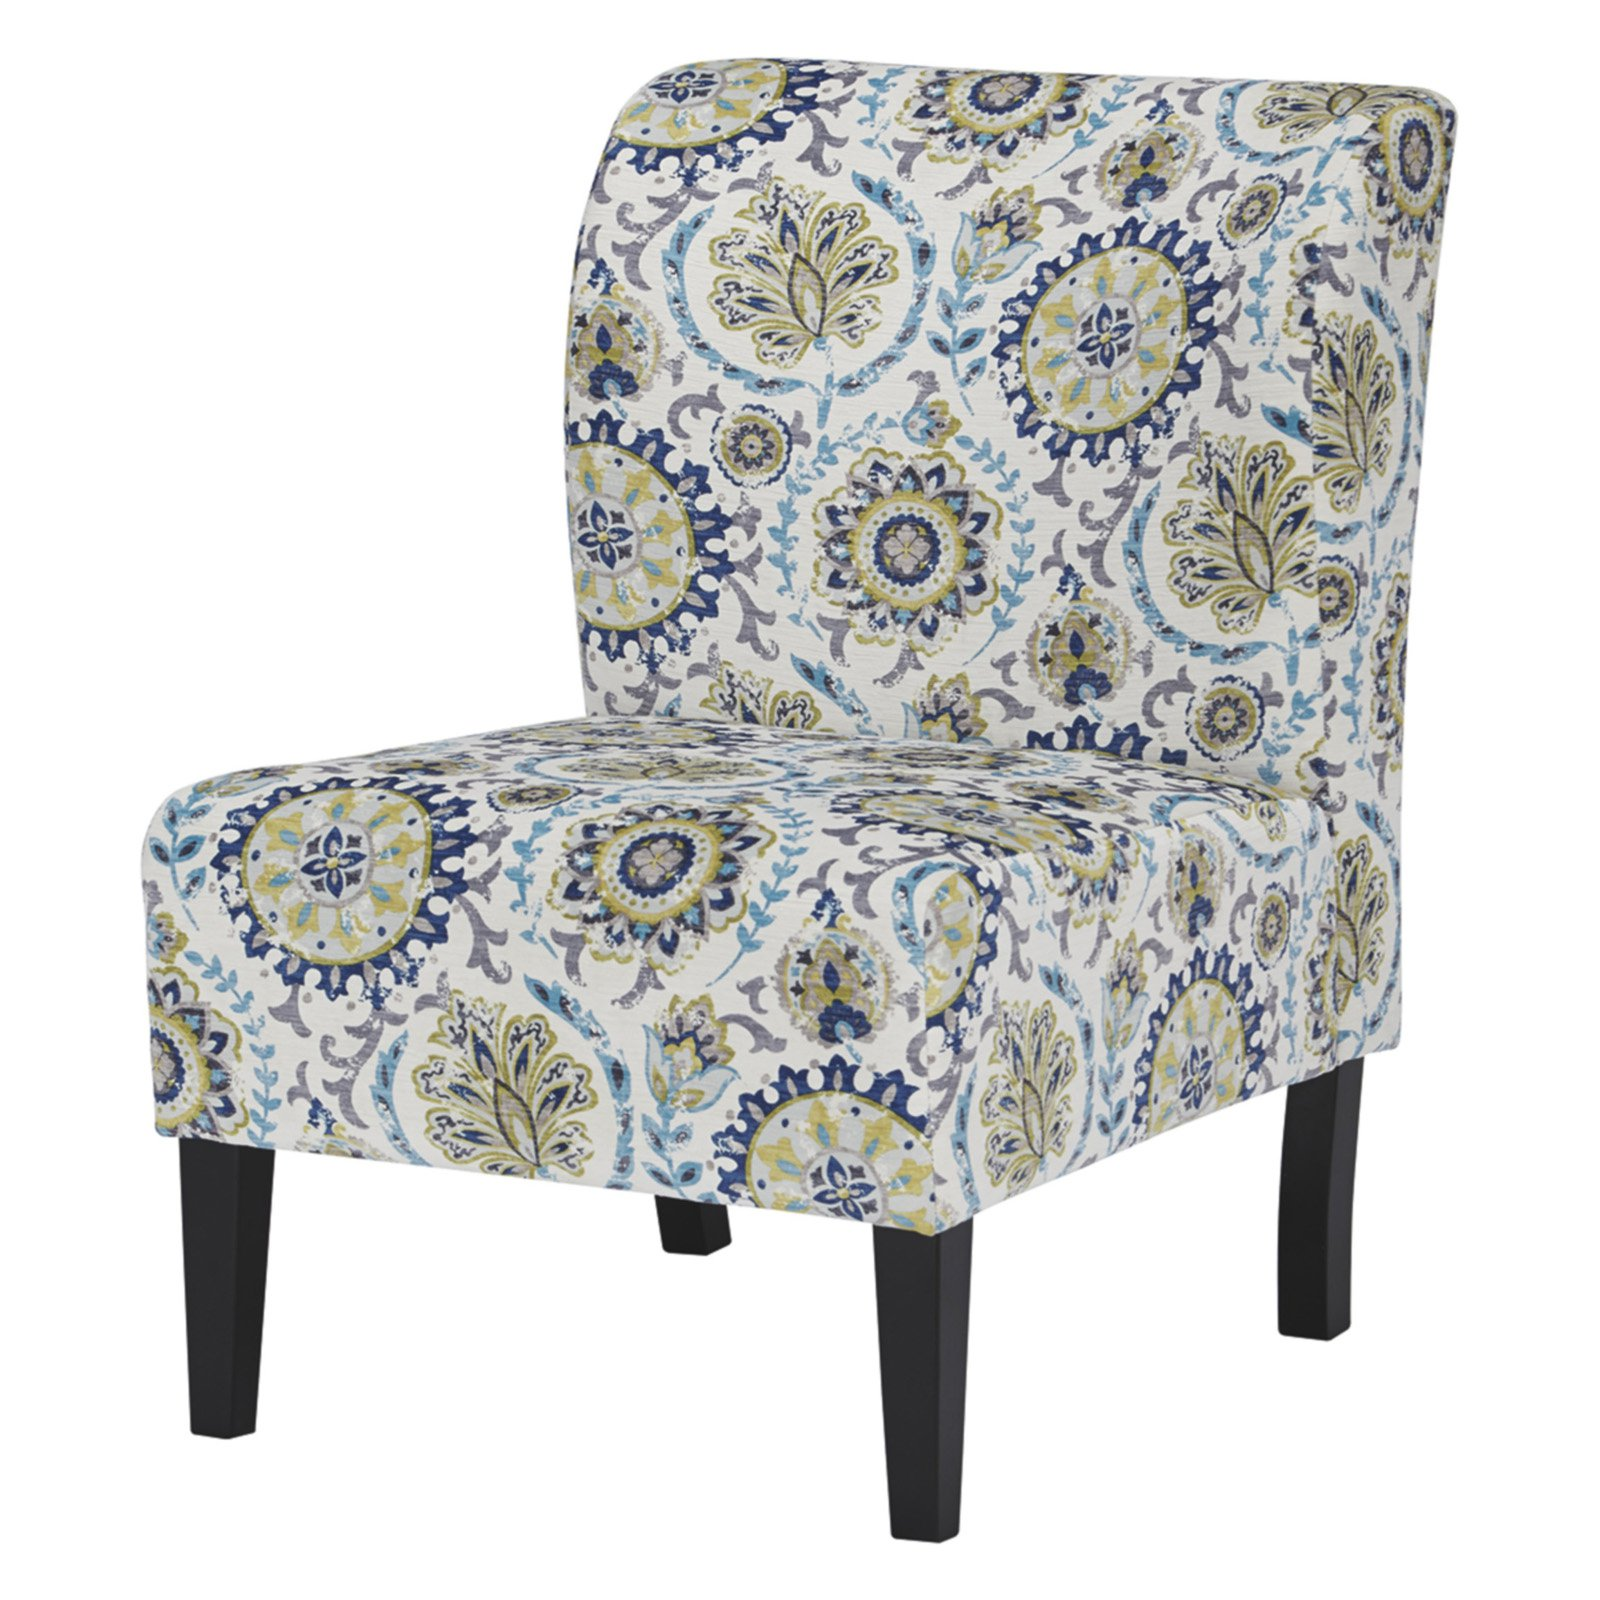 Floral Chairs Signature Design By Ashley Triptis Floral Print Accent